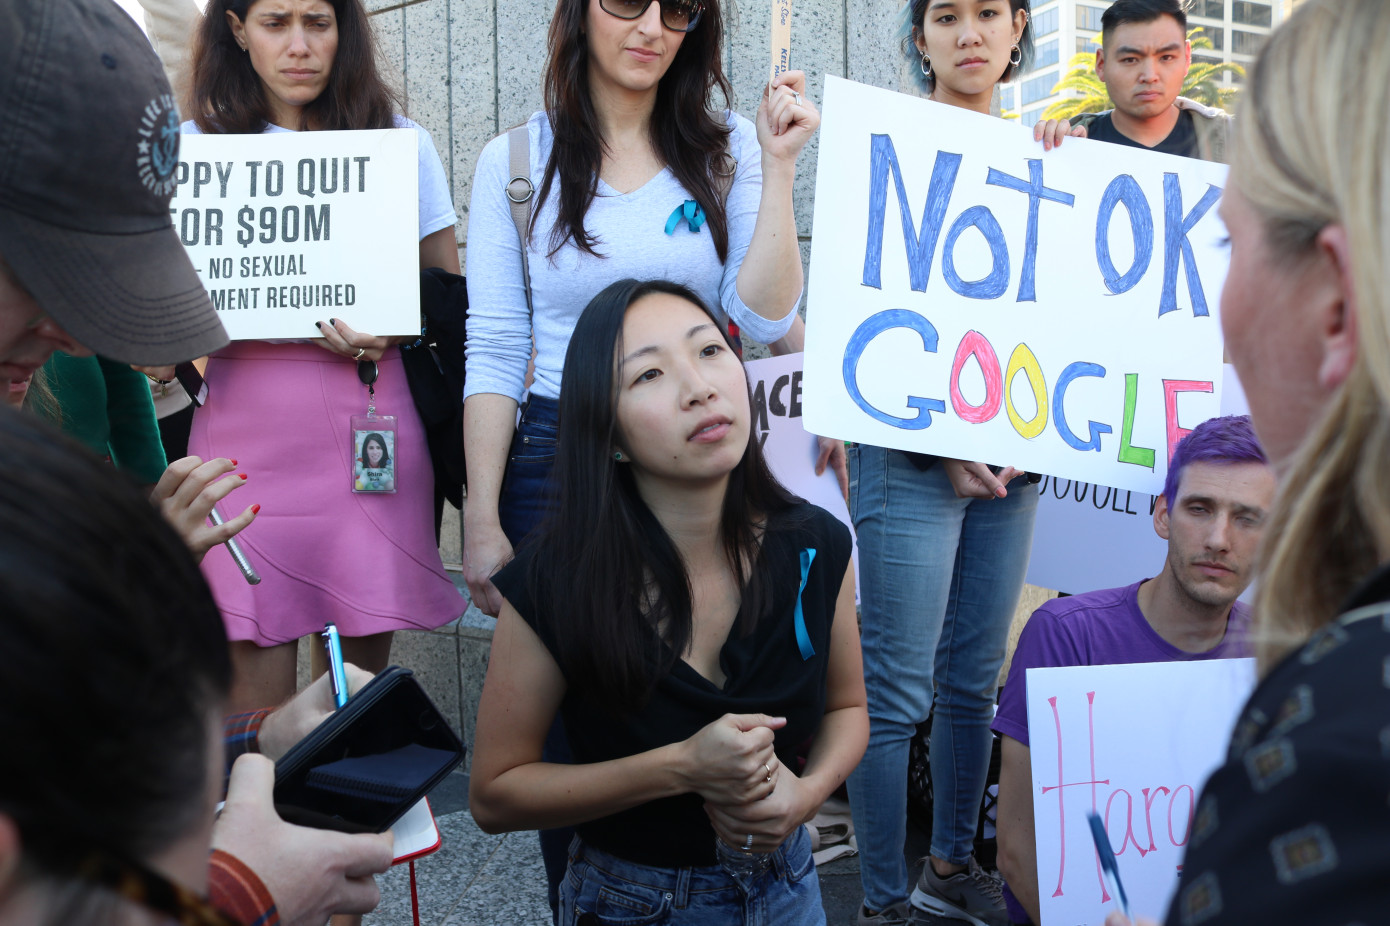 Google fires employees at centre of San Francisco protest